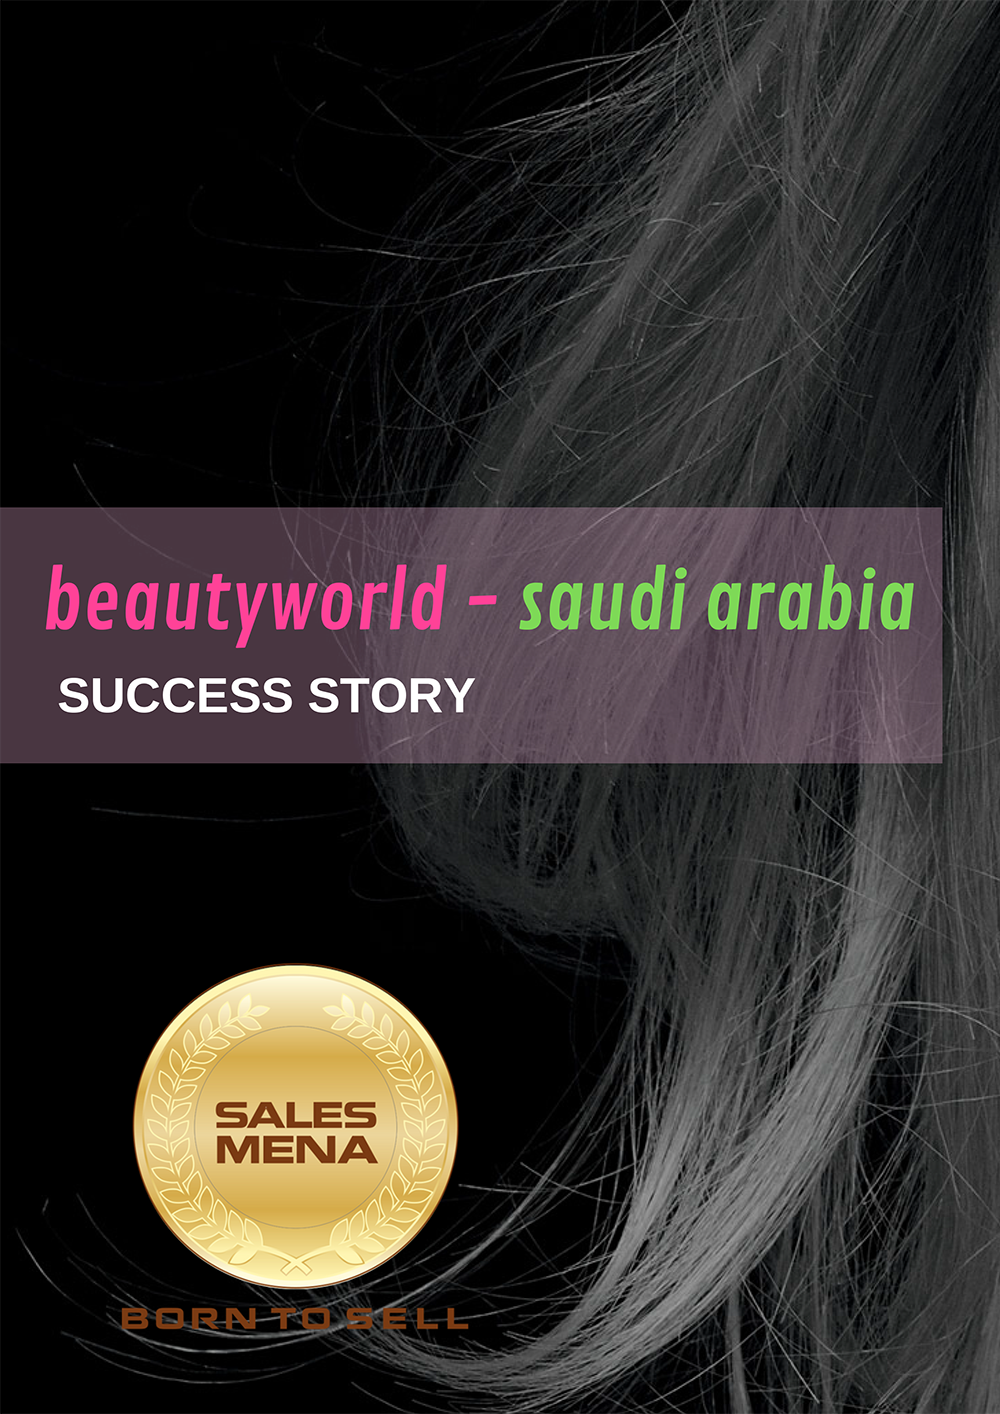 Beautyworld KSA